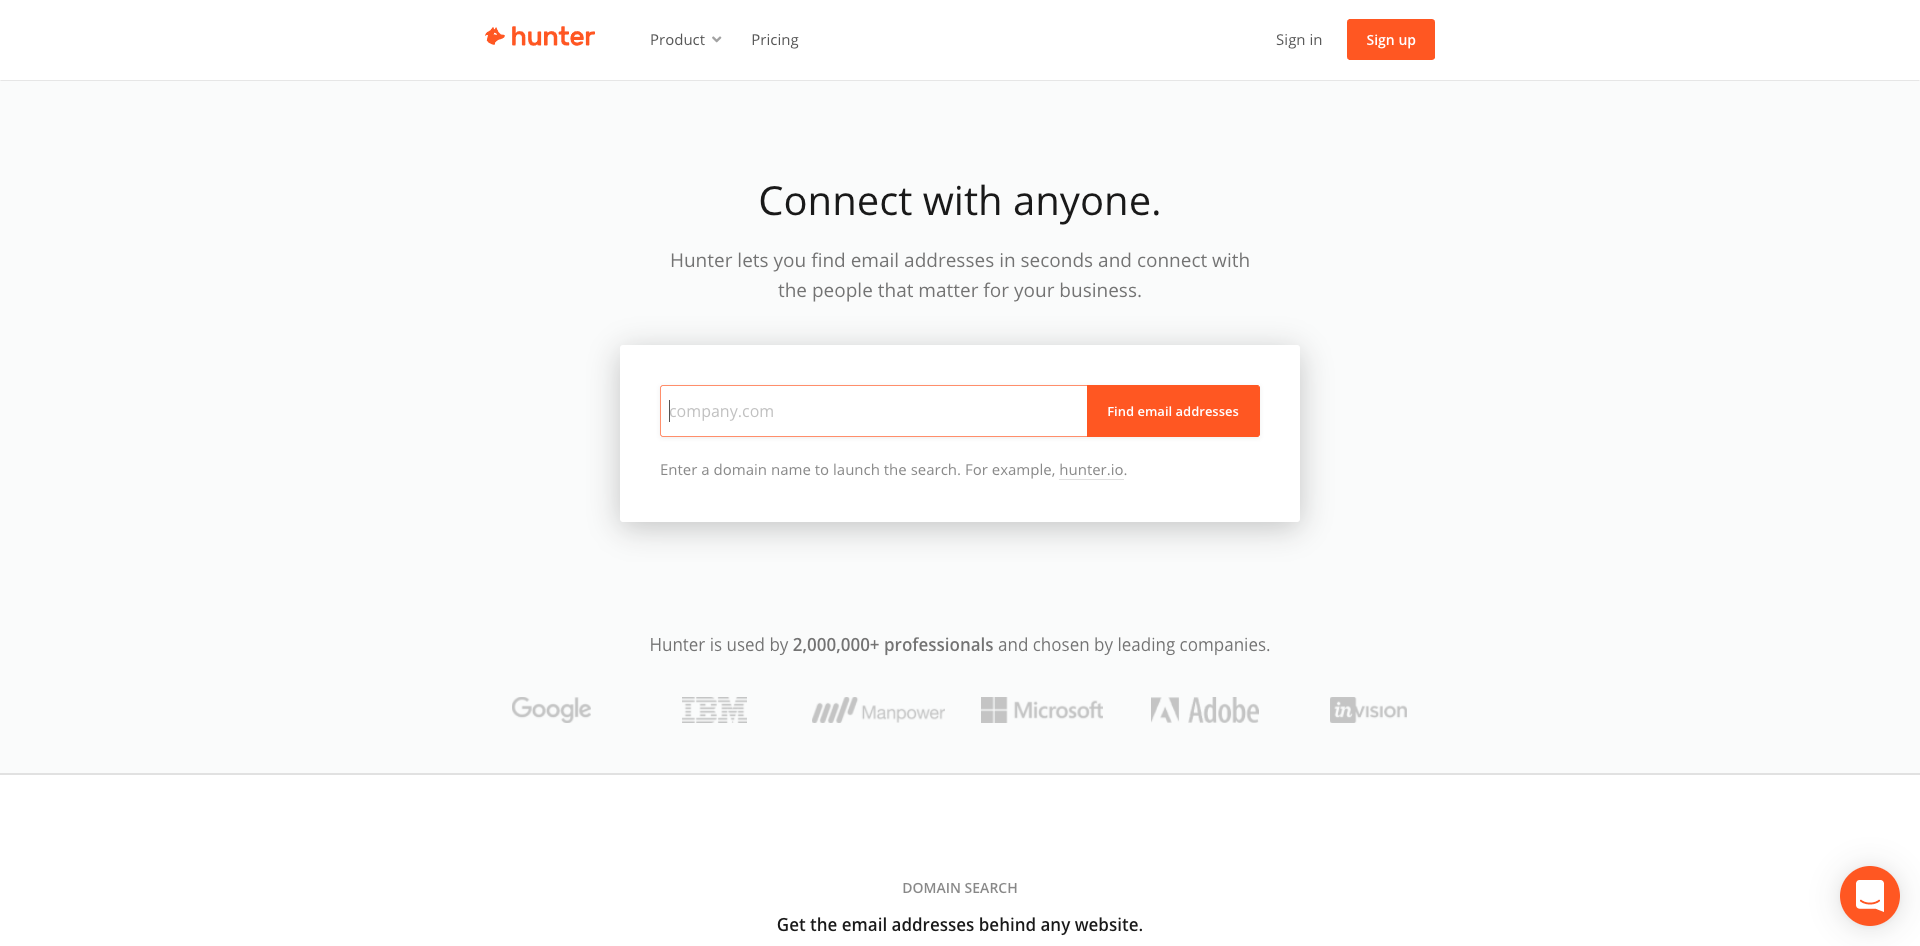 Hunter lets you find email addresses in seconds and connect with the people that matter for your business.